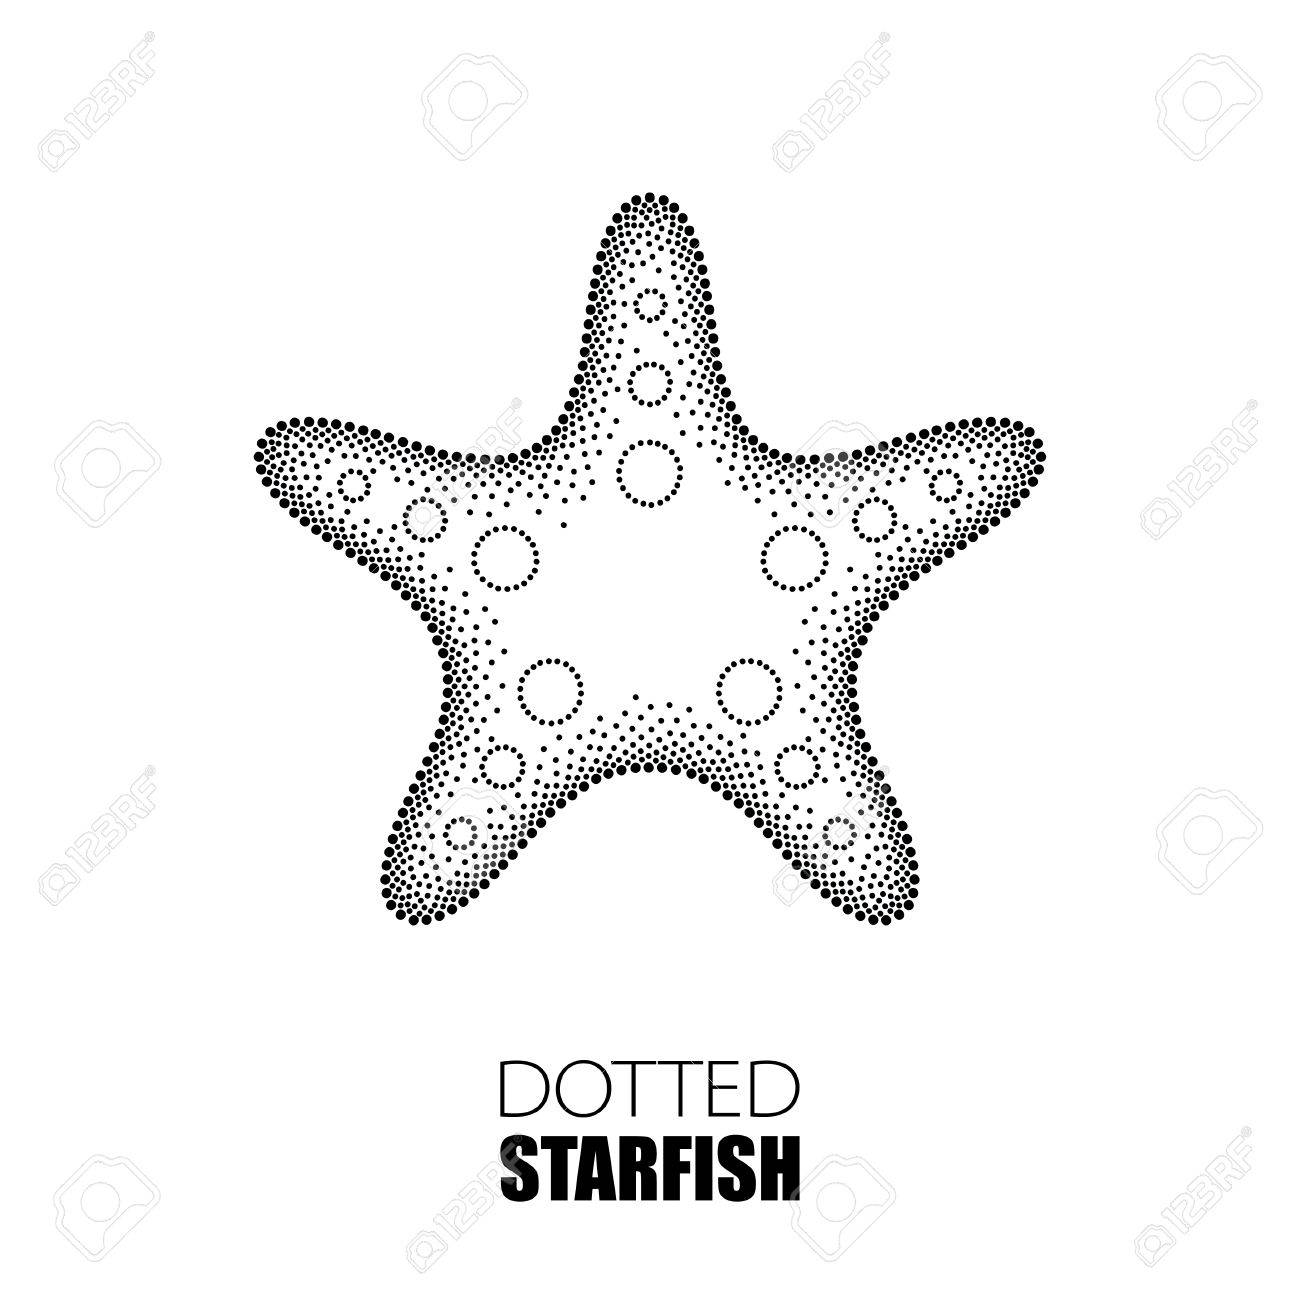 1300x1300 Vector Illustration Of Dotted Starfish Or Sea Star In Black